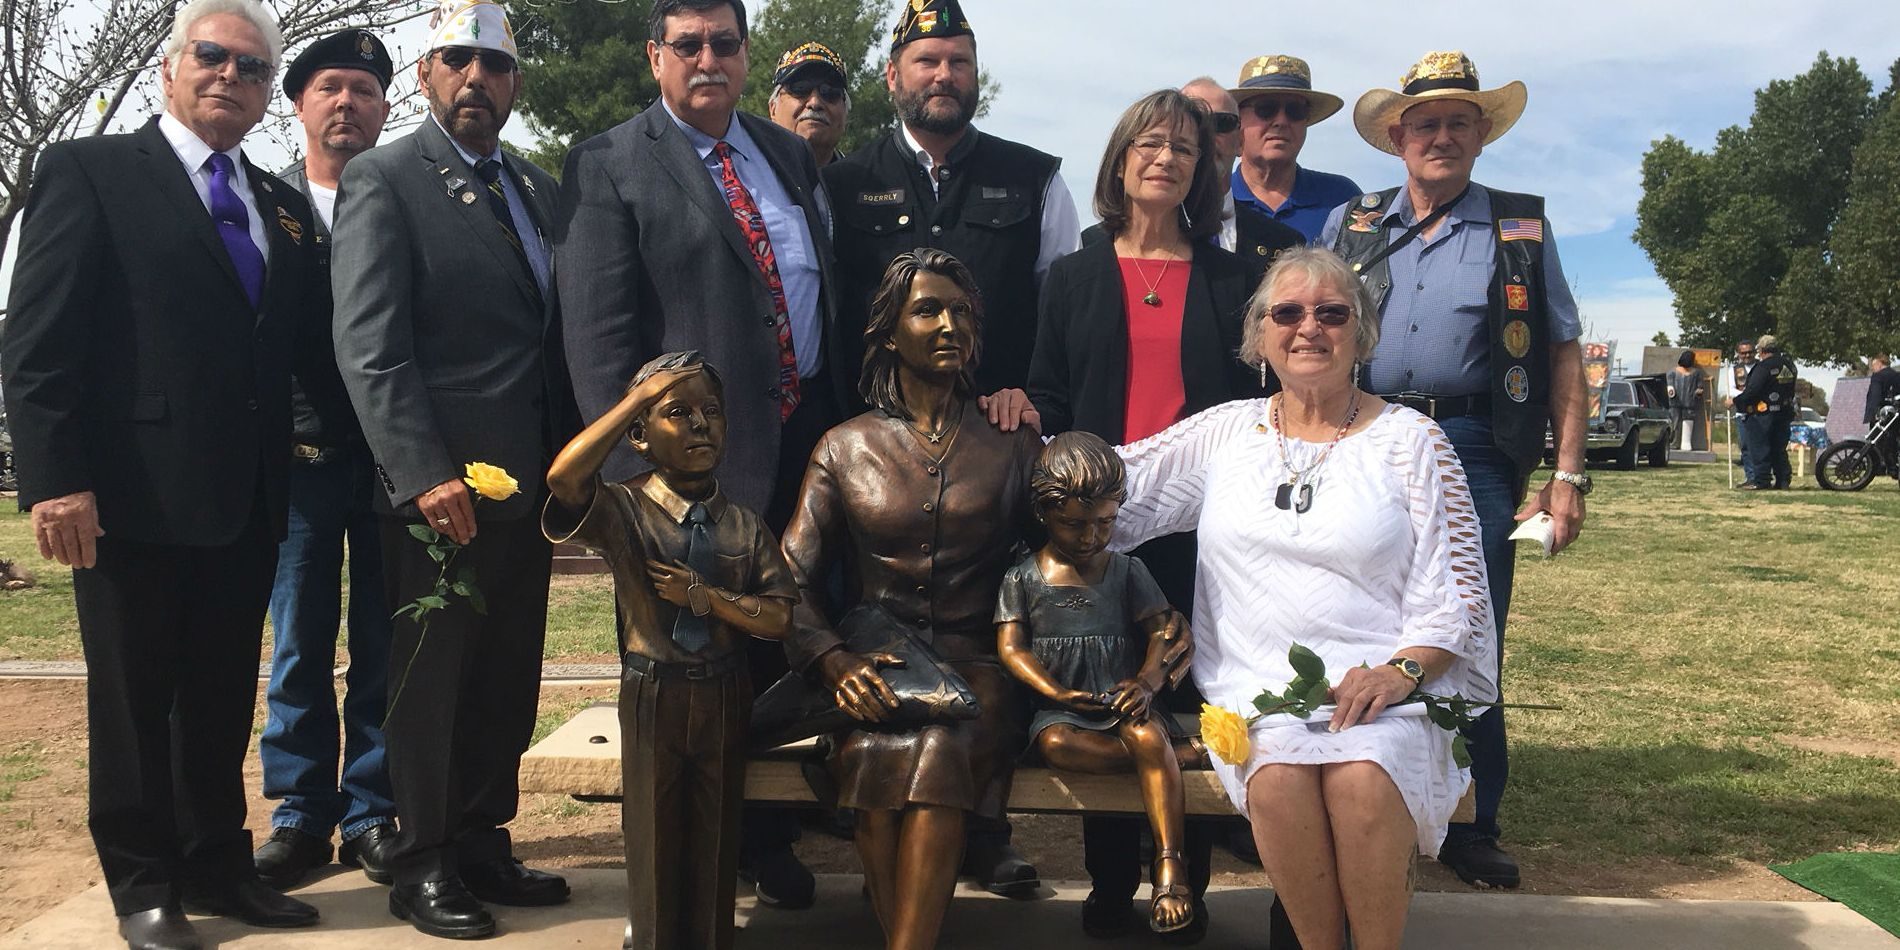 Tucson cemetery unveils statue dedicated to Gold Star families